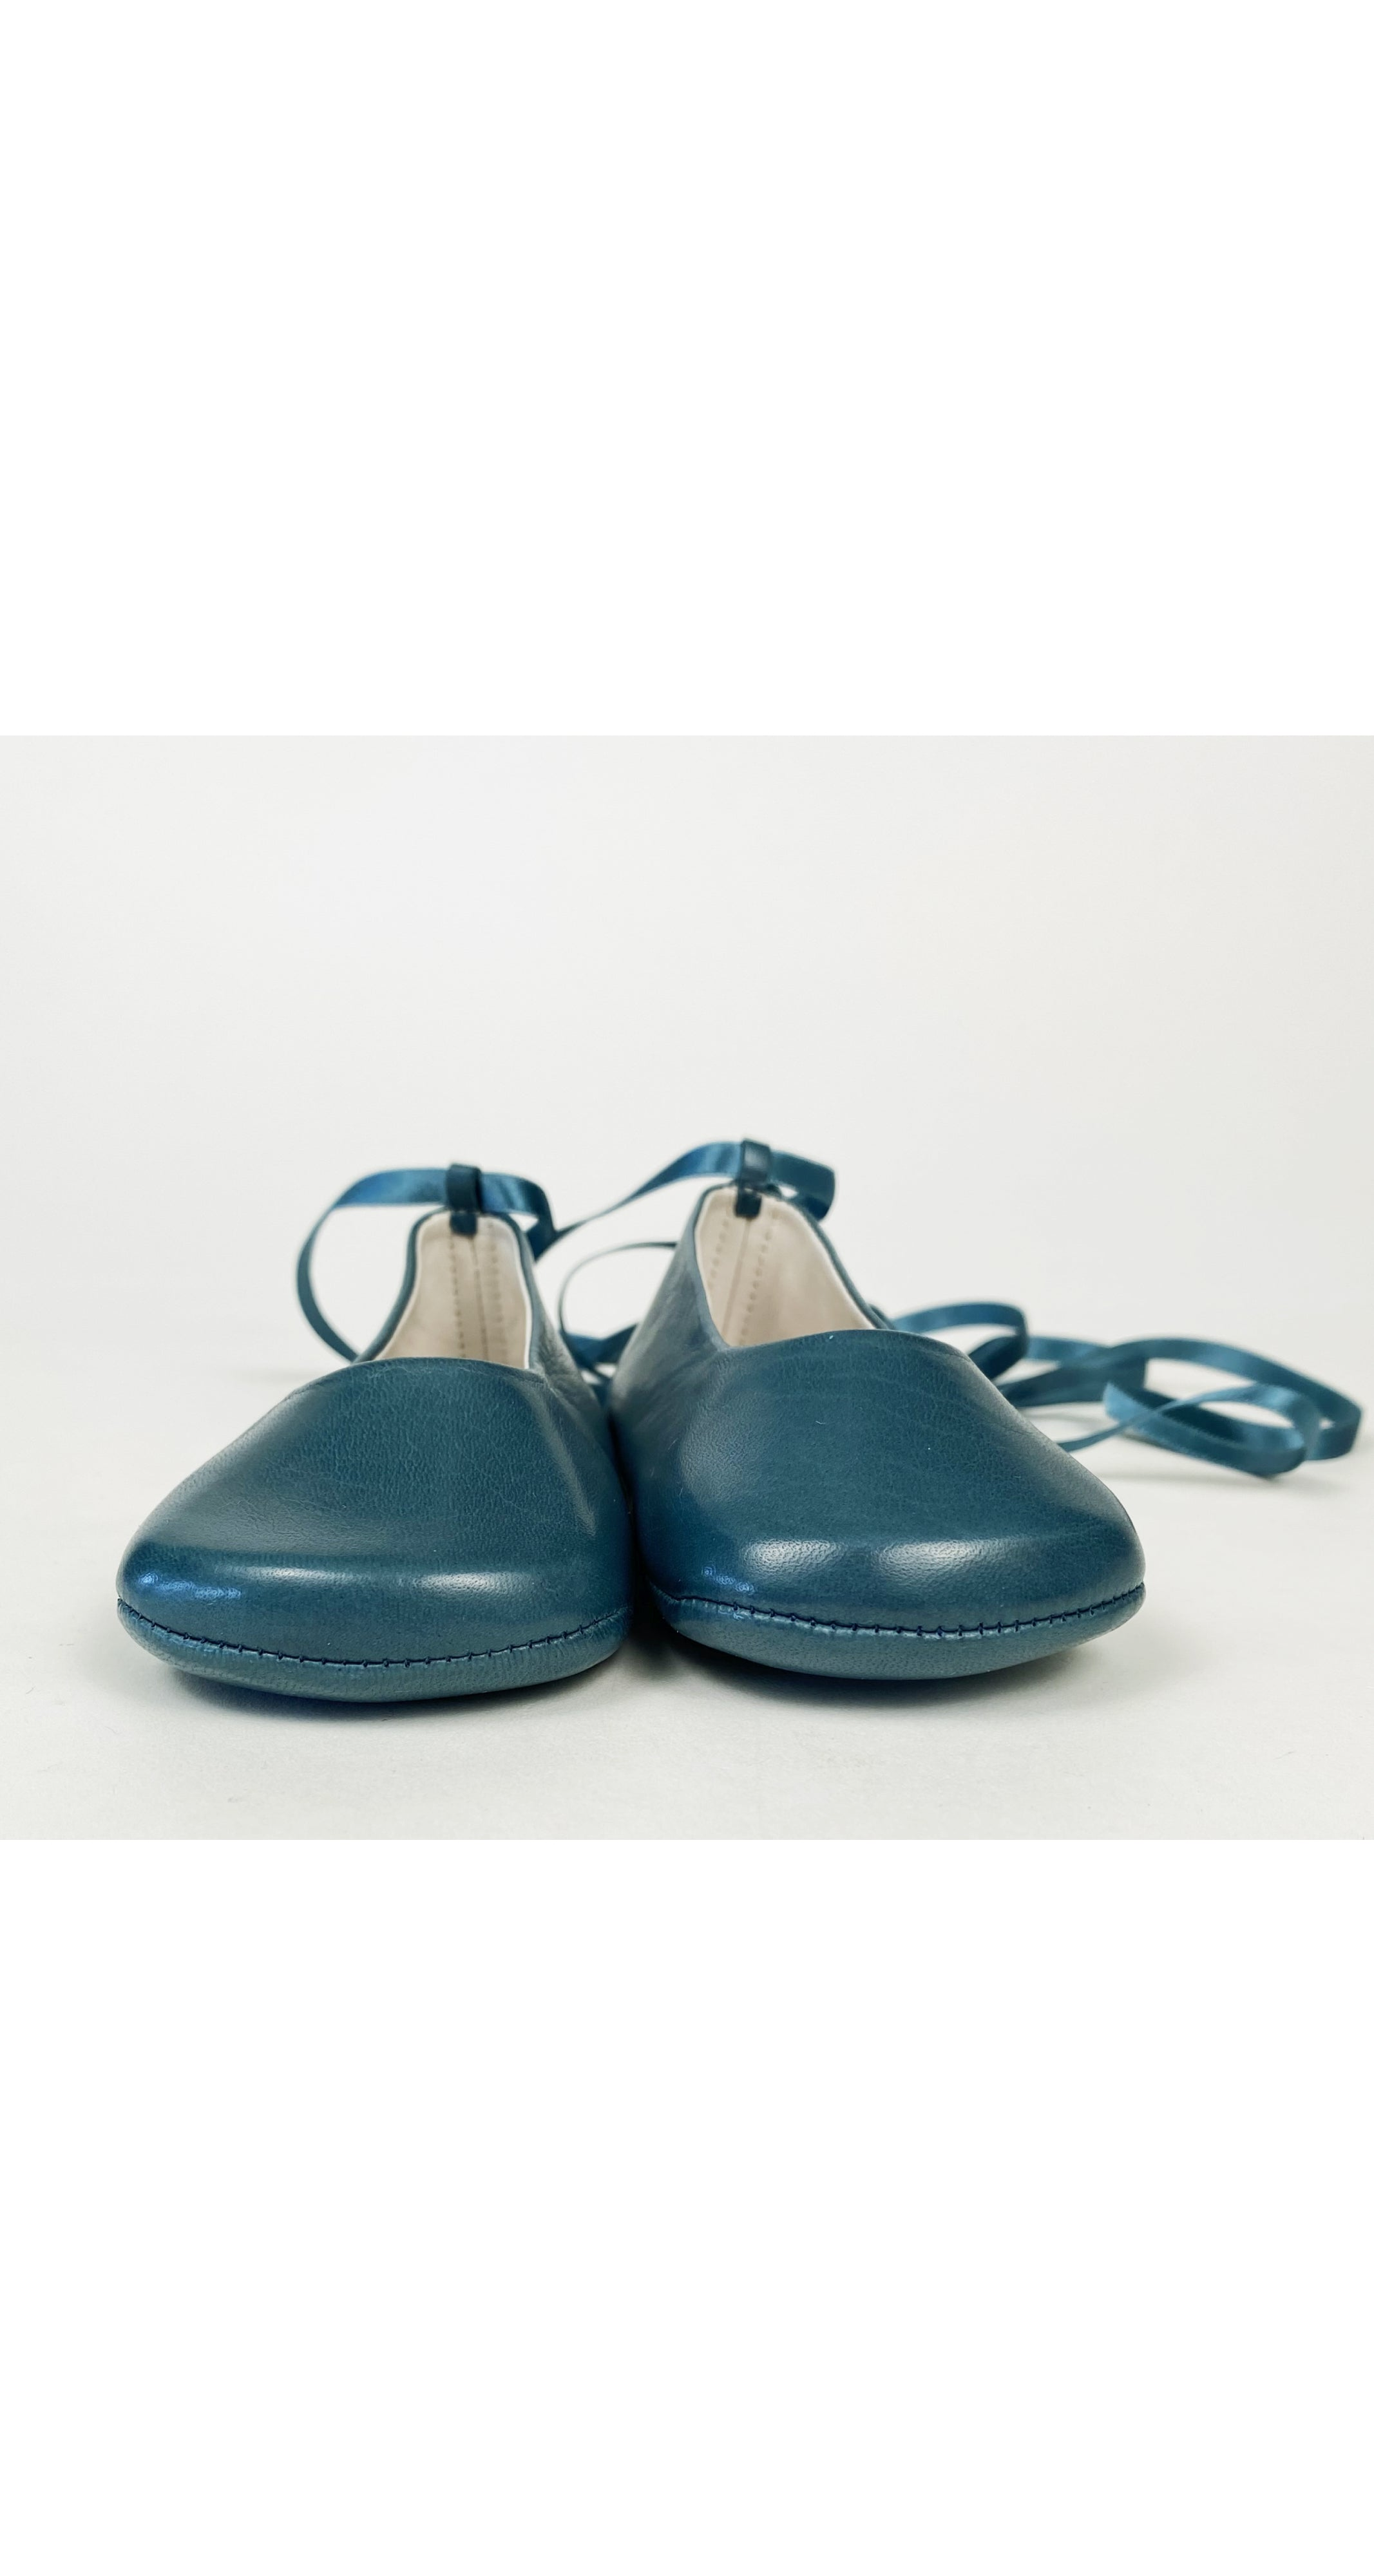 2000s NOS Teal Lambskin Lace-Up Ballet Shoes